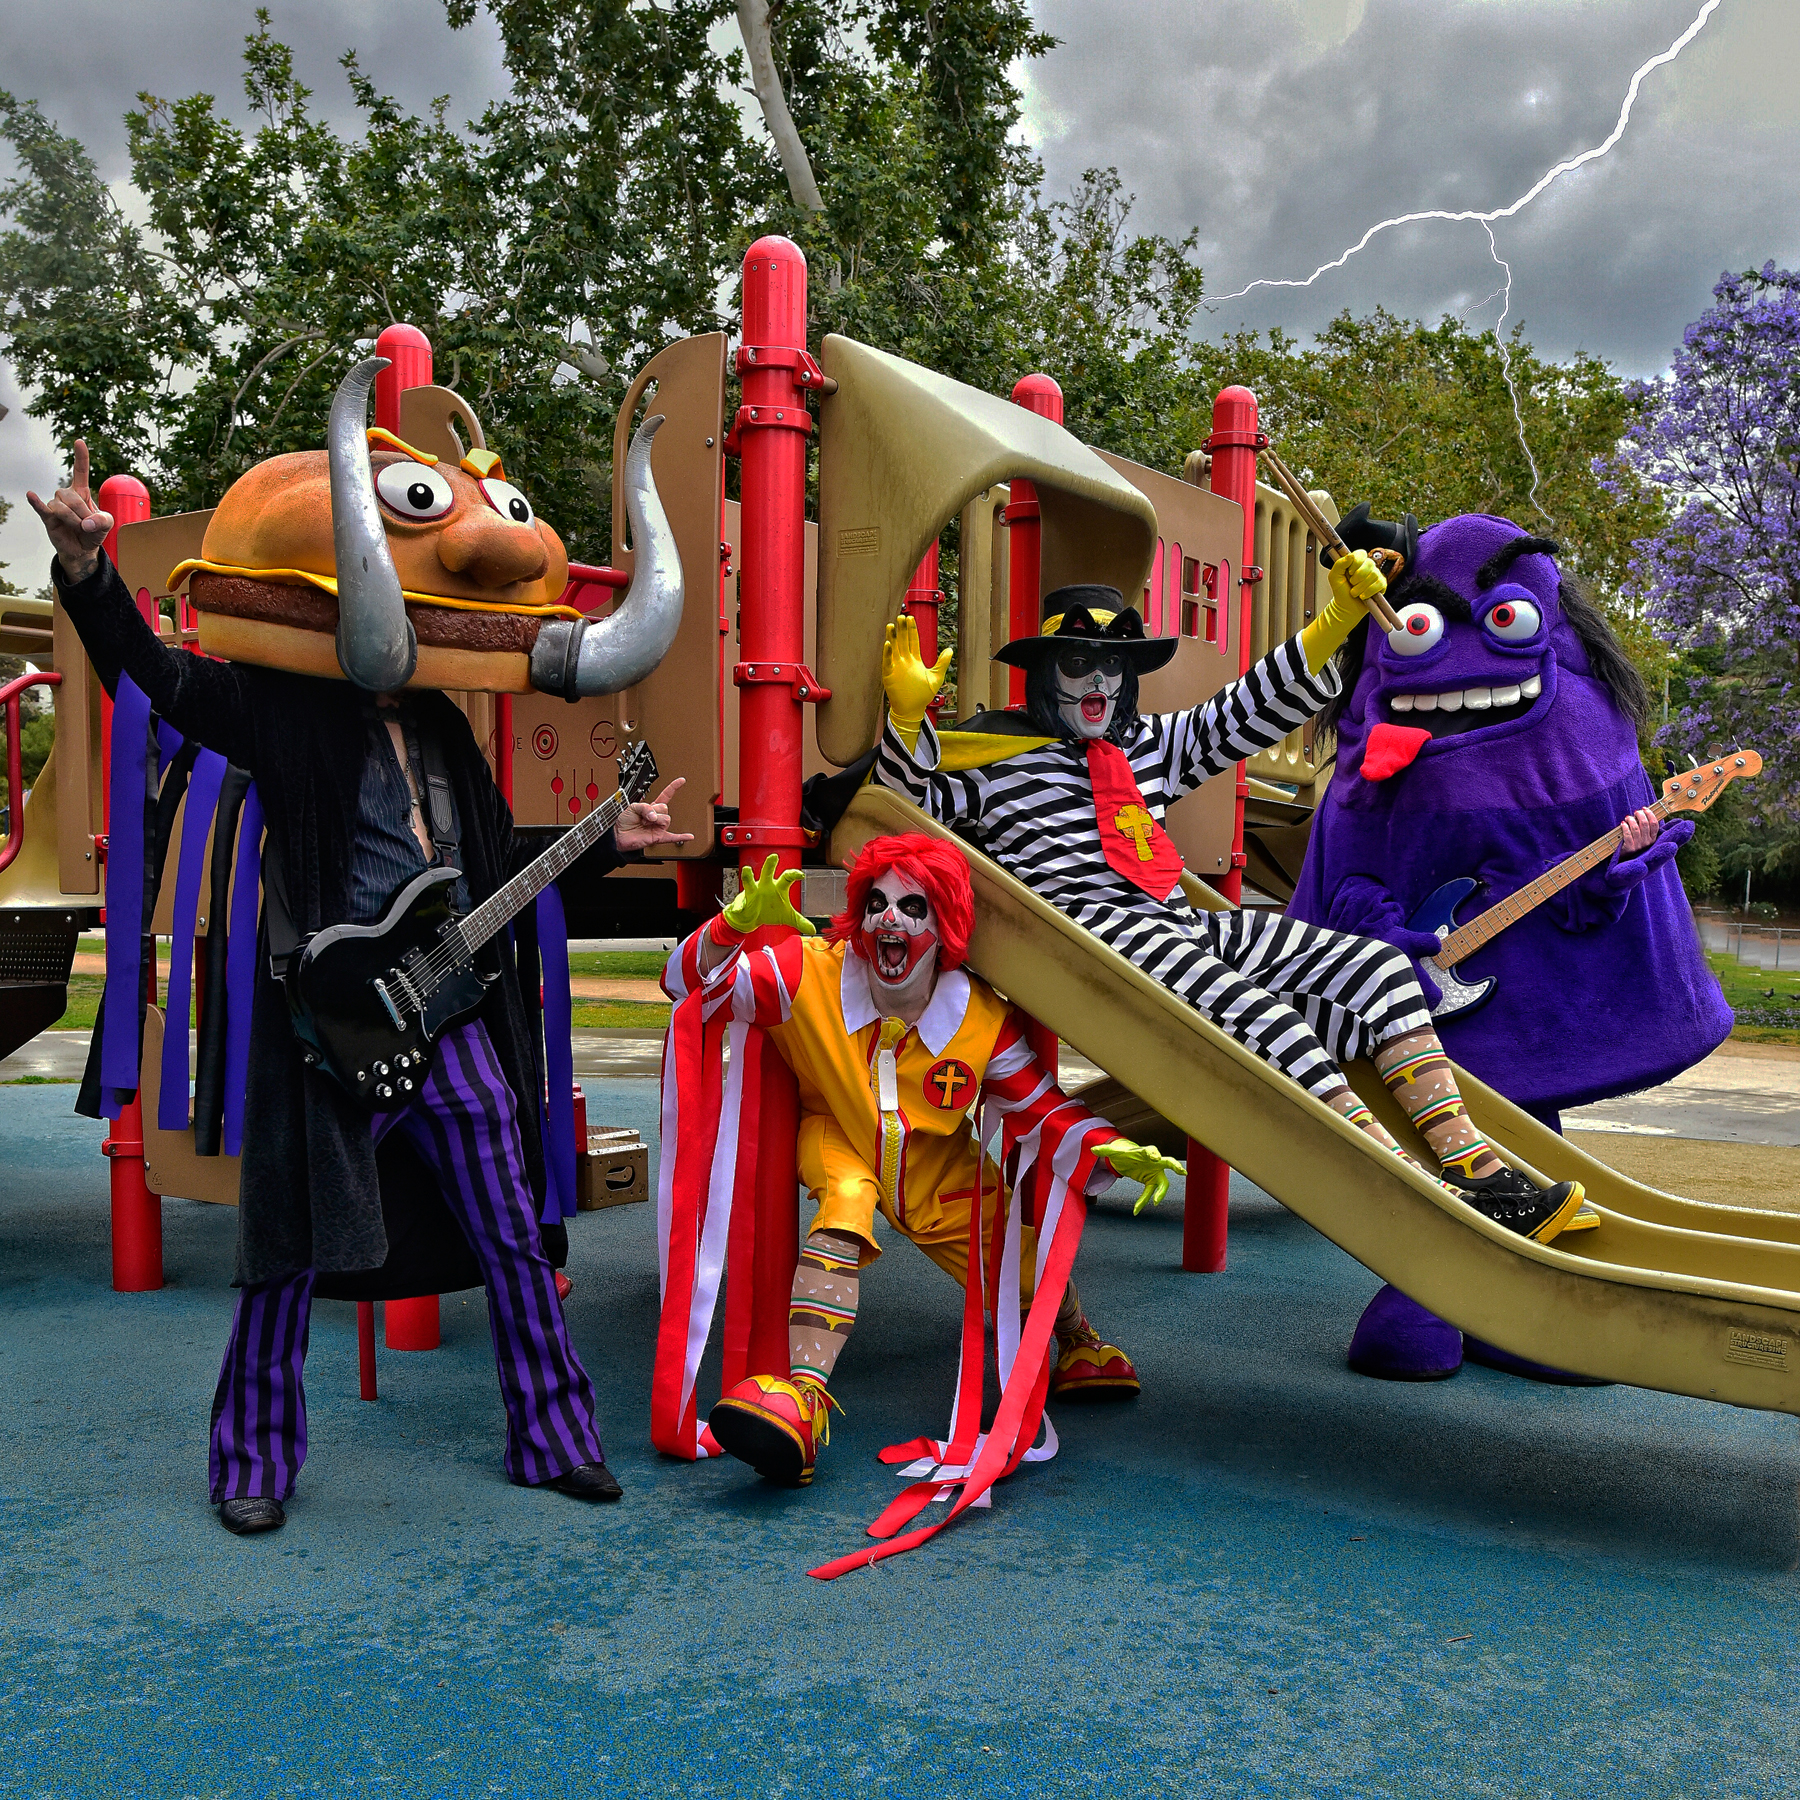 MAC SABBATH ARE THE UNDISPUTED CHAMPIONS OF 'DRIVE-THRU' METAL